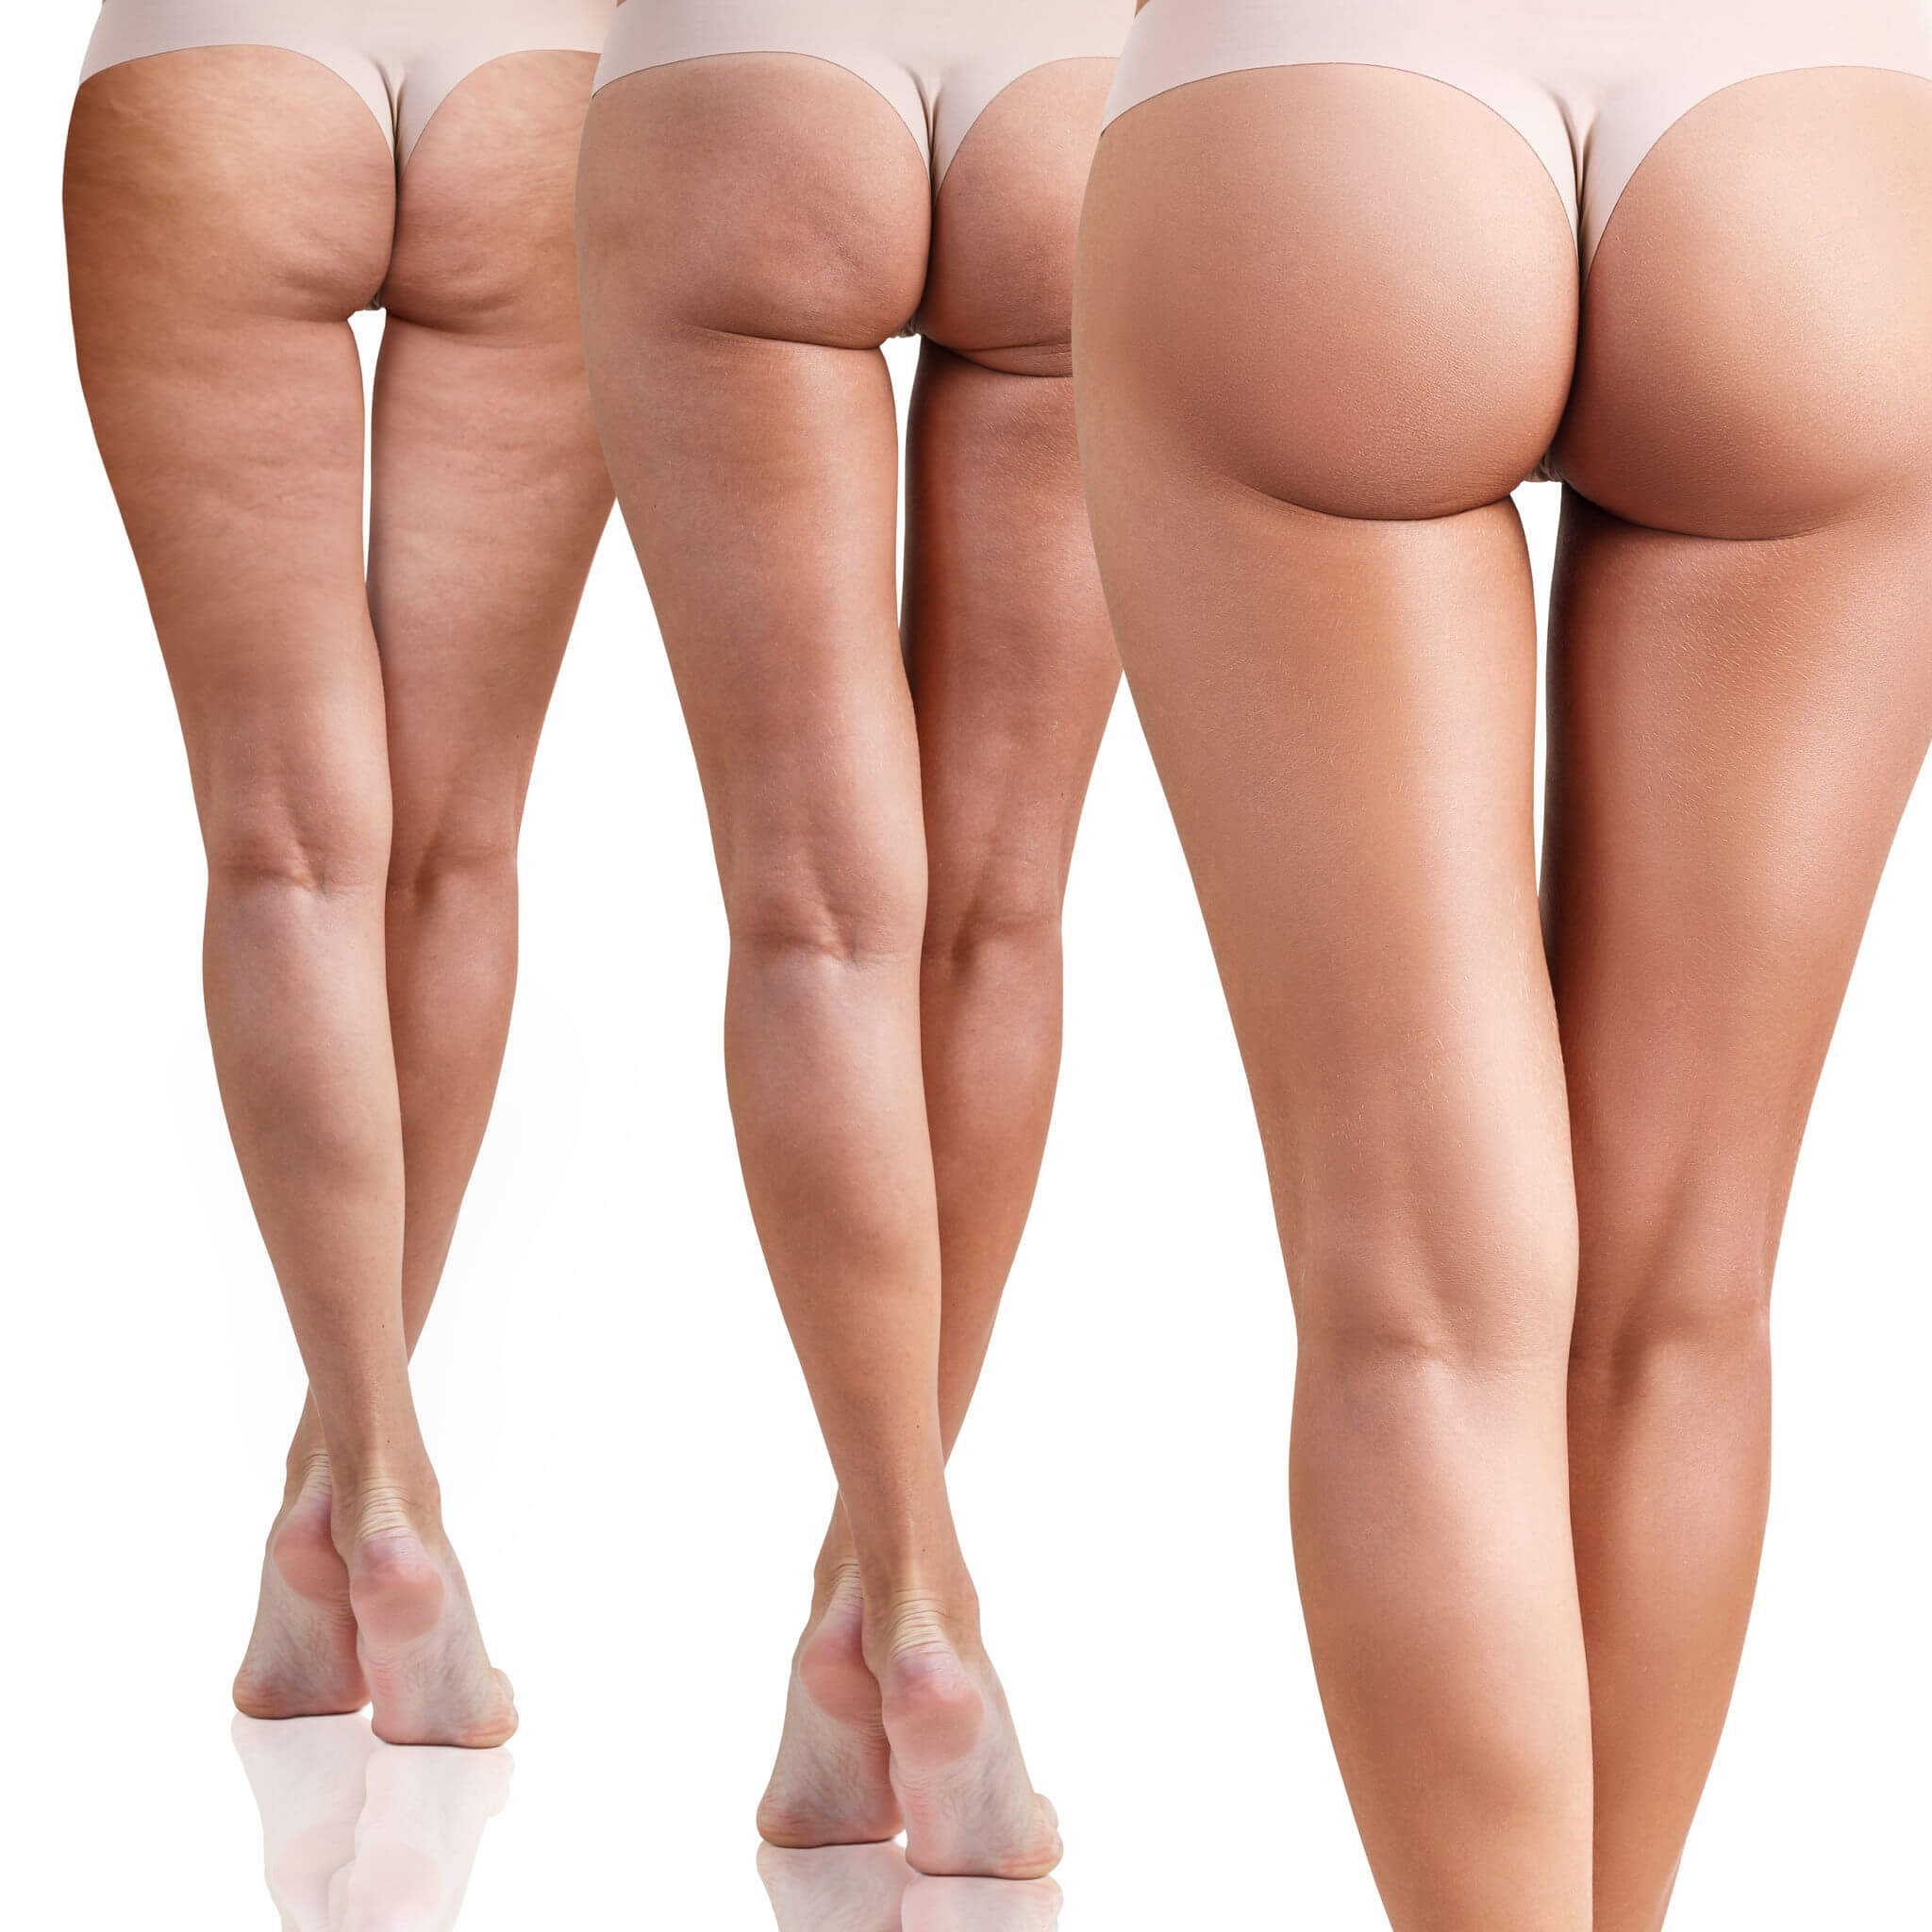 Premier MediSpa - Colorado Springs cellulite removal